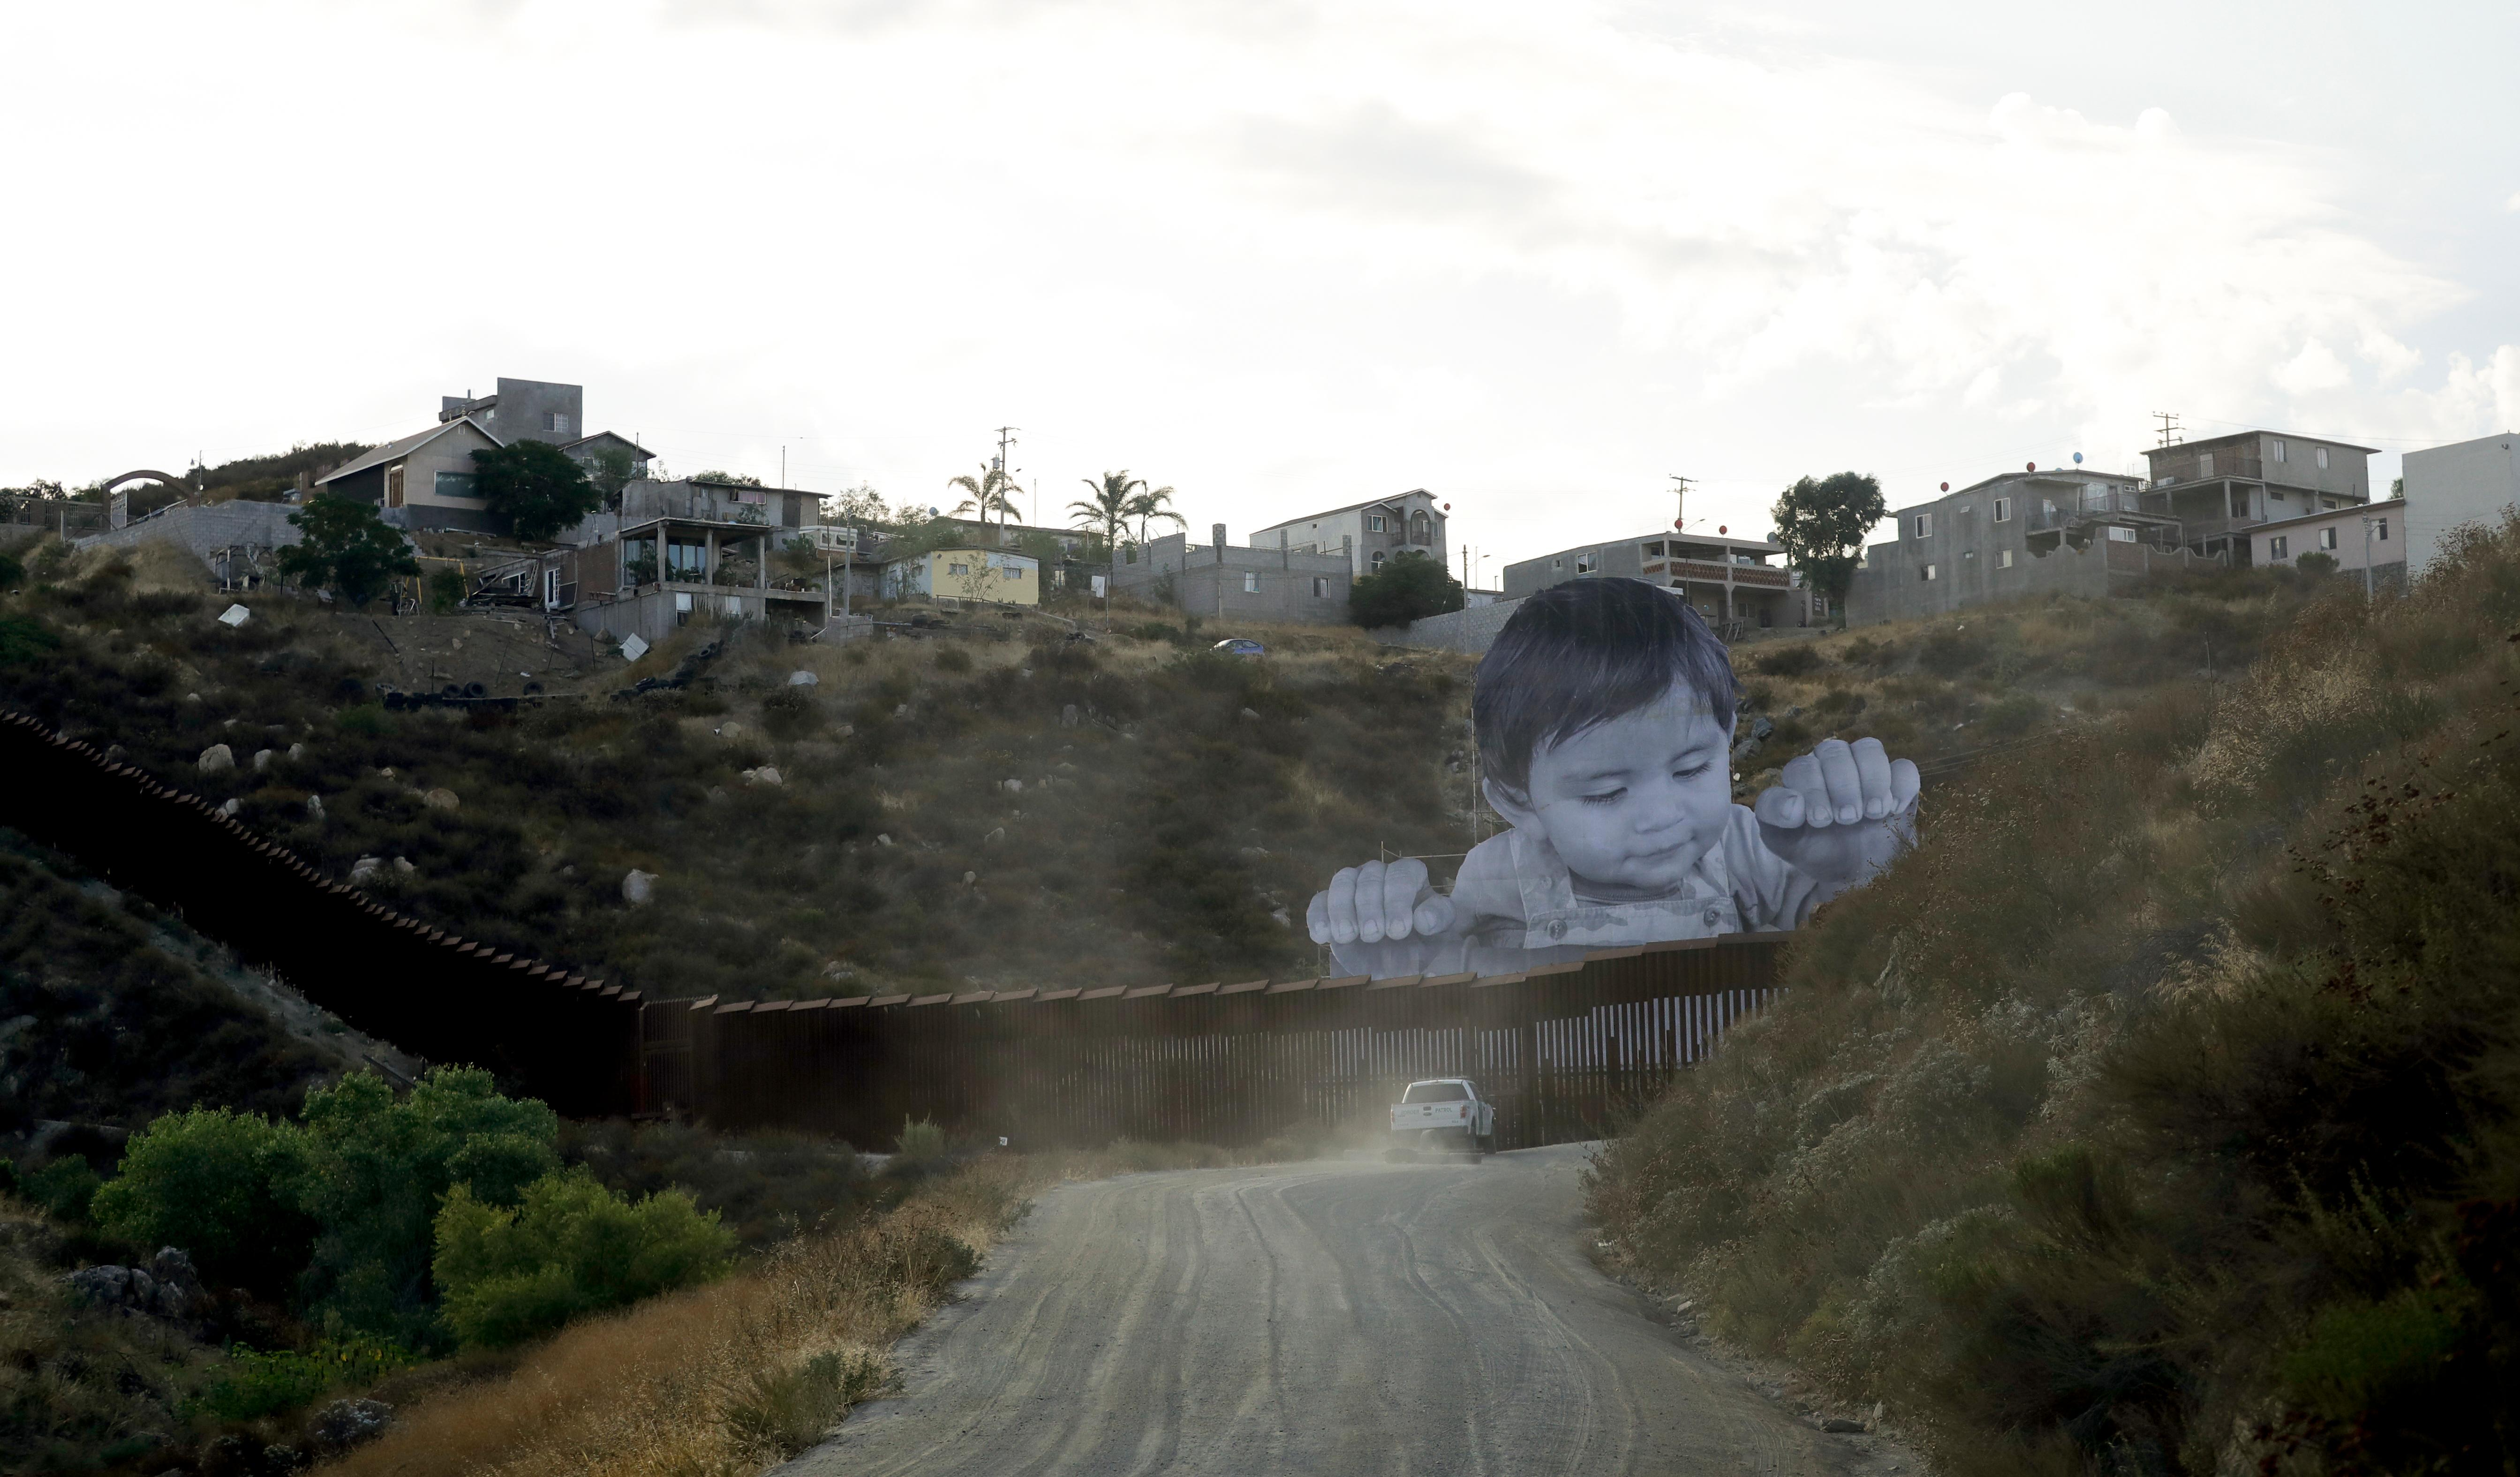 A Border Patrol vehicle drives in front of a mural in Tecate, Mexico, just beyond a border structure Friday, Sept. 8, 2017, in Tecate, Calif. A French artist aiming to prompt discussions about immigration erected a 65-foot-tall cut-out photo of a Mexican boy, pasting it to scaffolding built in Mexico. The image overlooks a section of wall on the California border and will be there for a month. (AP Photo/Gregory Bull)